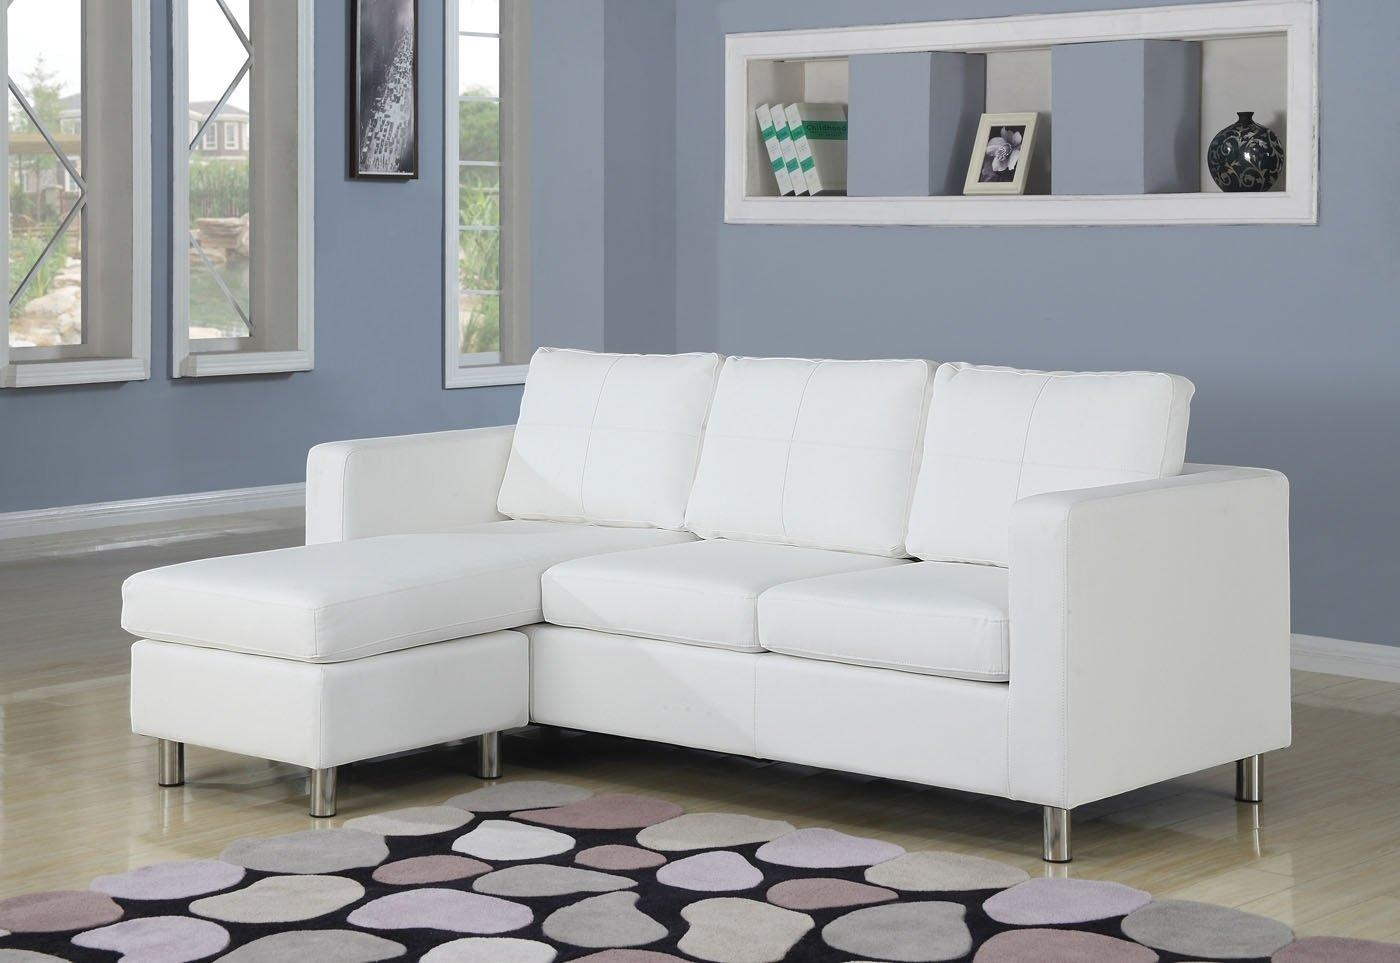 Ideal Small Sectional Sofa — Interior Home Design Regarding Small Scale Leather Sectional Sofas (Image 6 of 20)